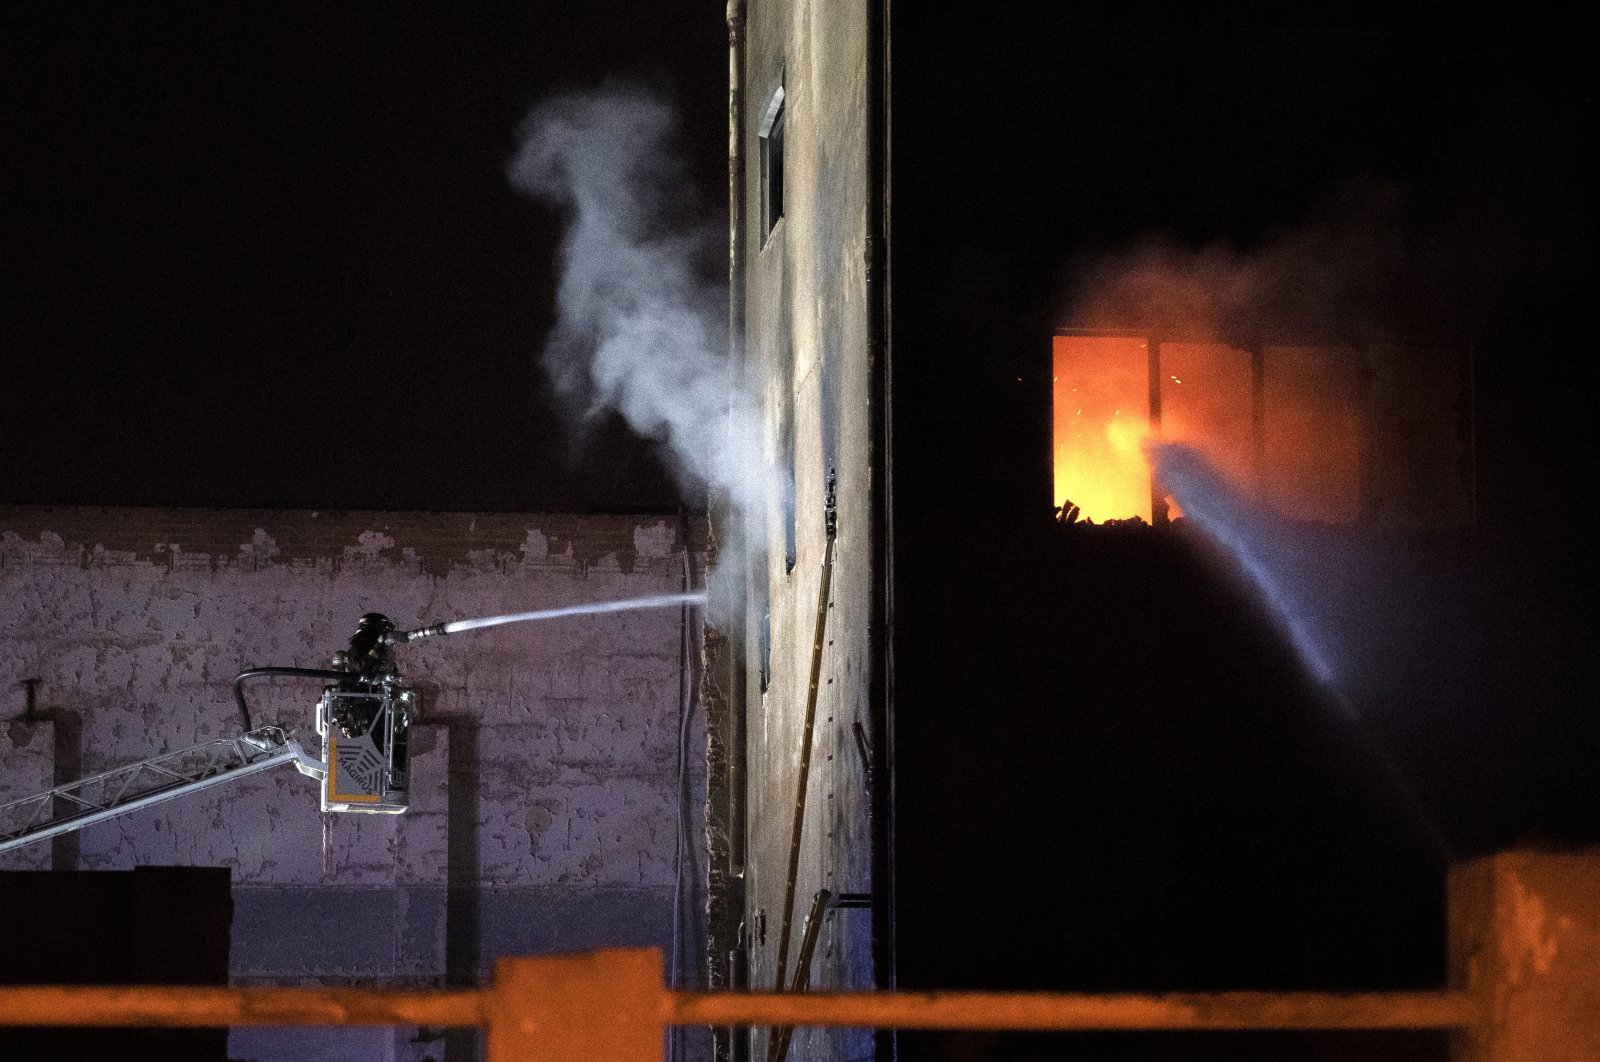 Firefighters work to extinguish a fire at a building in Badalona, Barcelona, Spain, Dec. 10, 2020. (AP Photo)